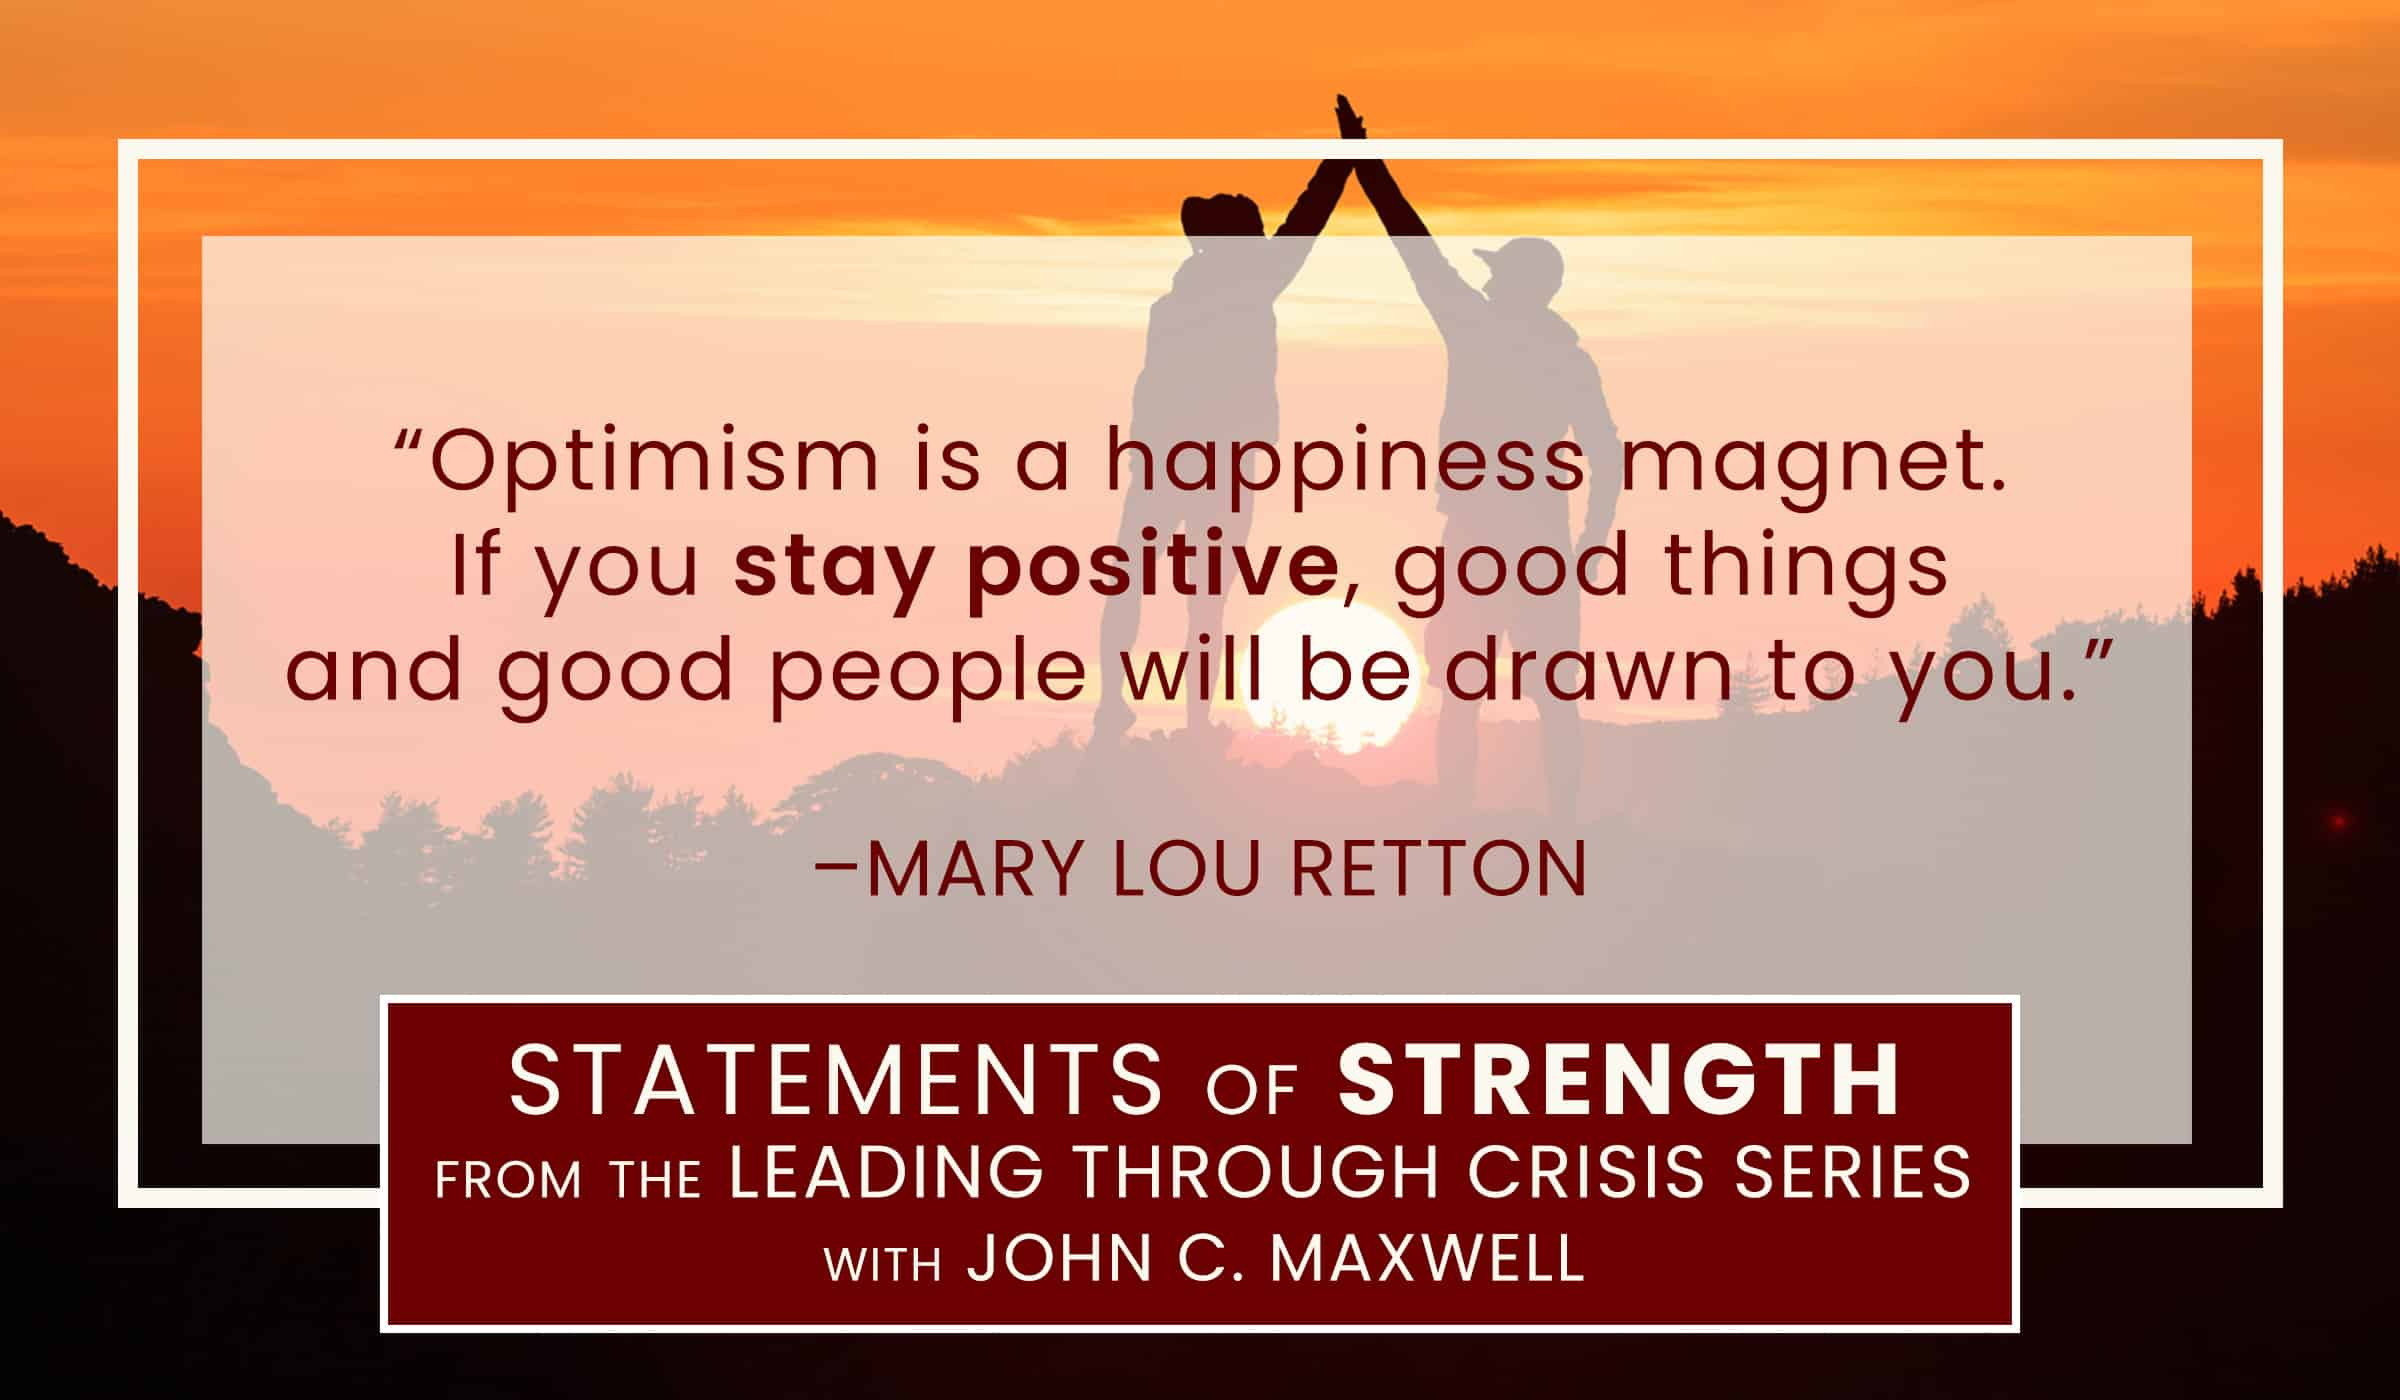 image of quote picture with text quote by mary lou retton